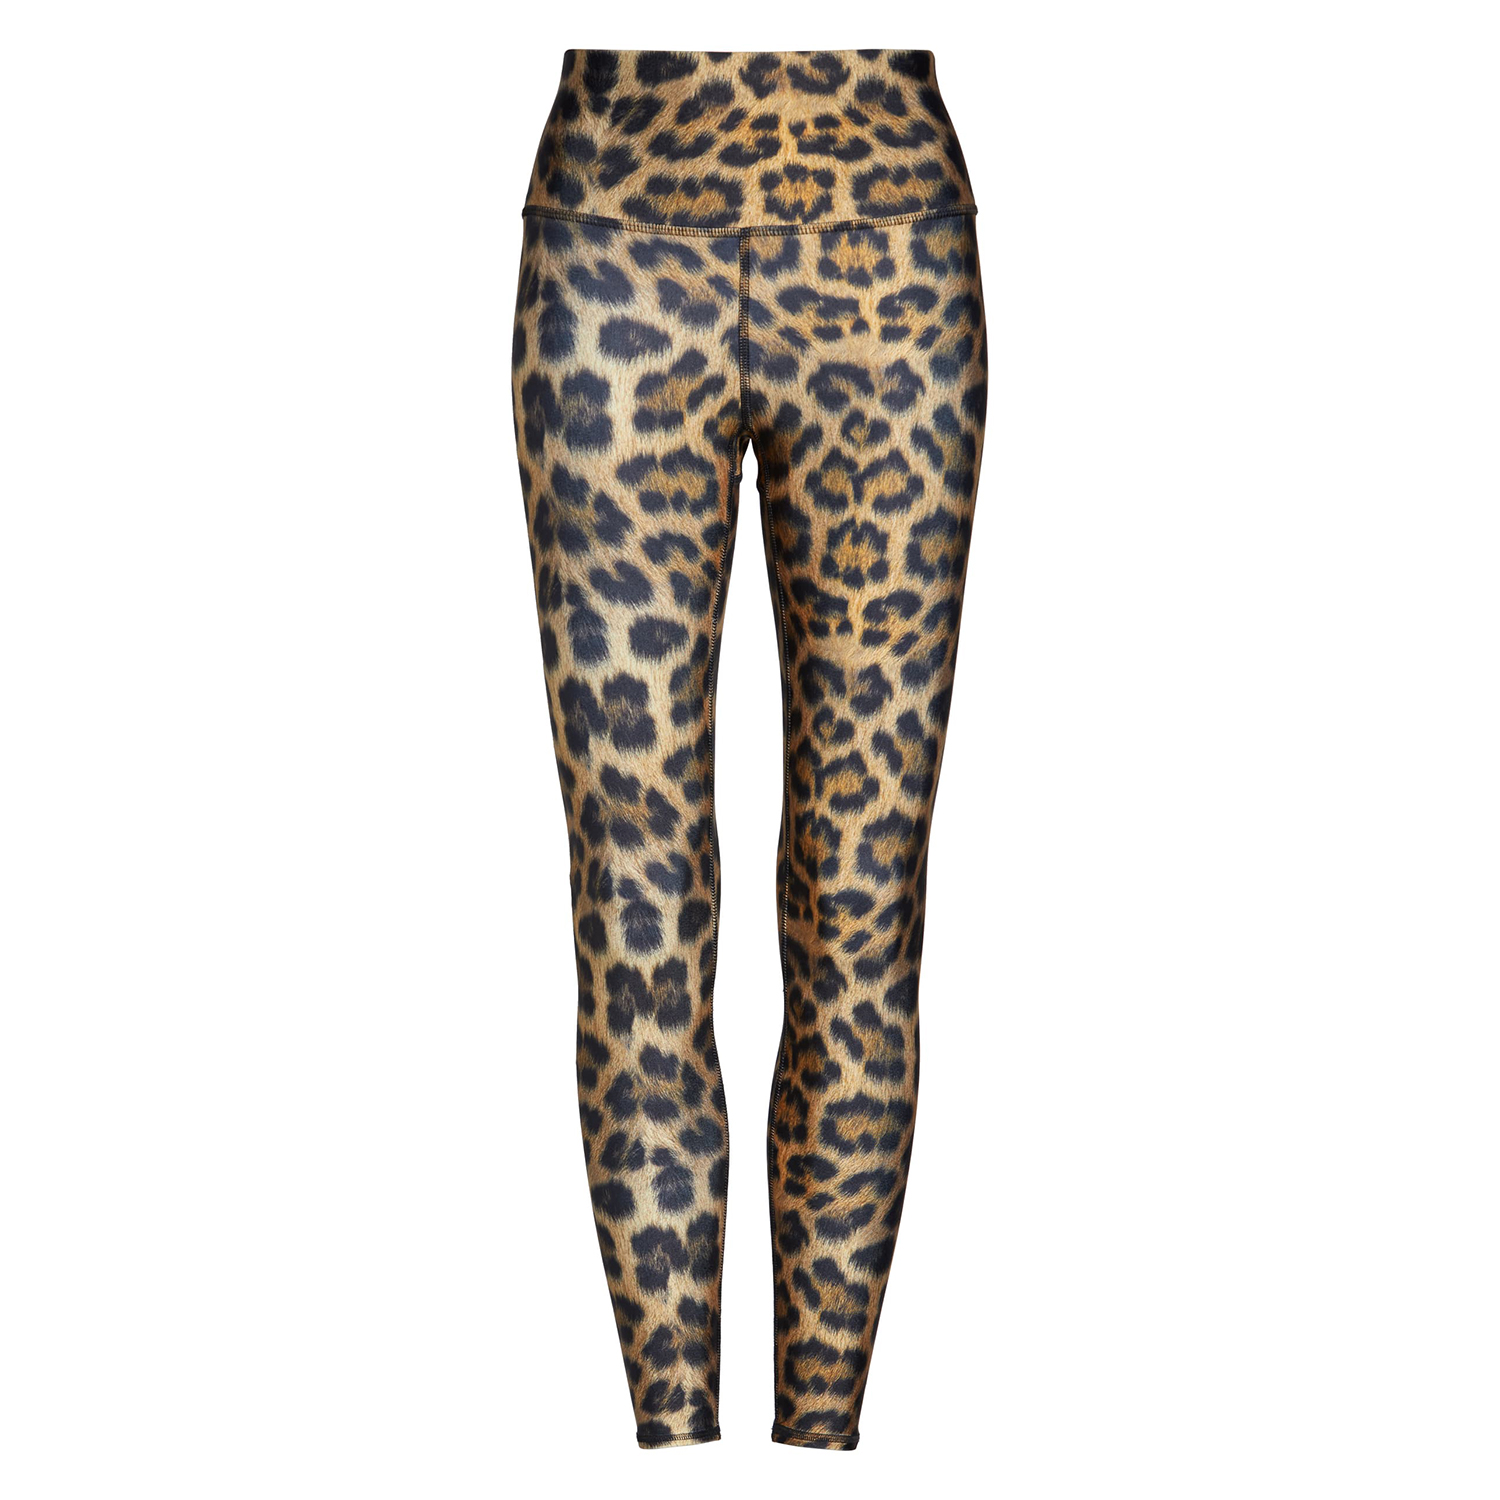 Terez High Waist Leopard Print Leggings